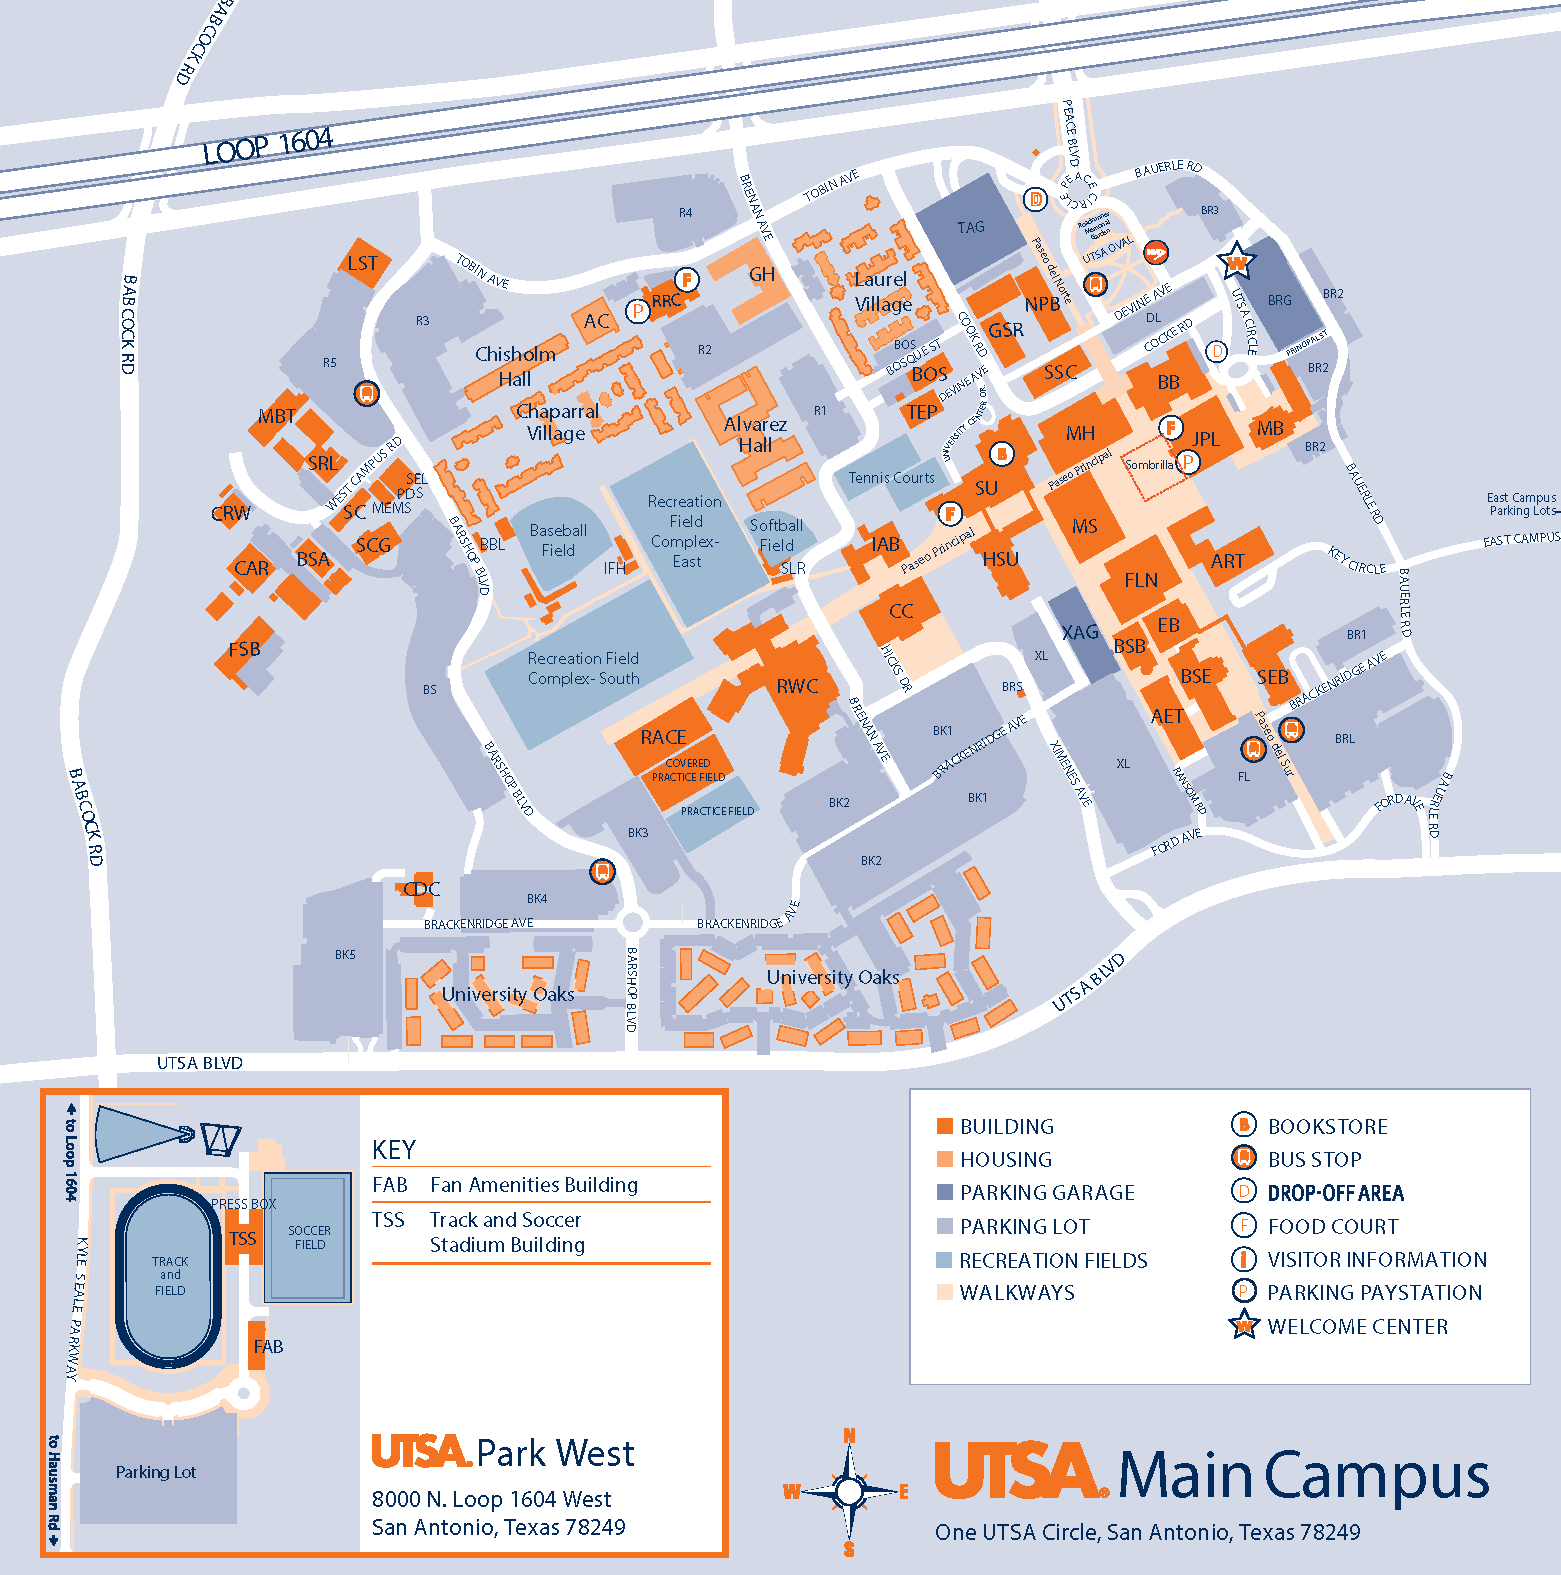 Main Campus Utsa University Of Texas At San Antonio